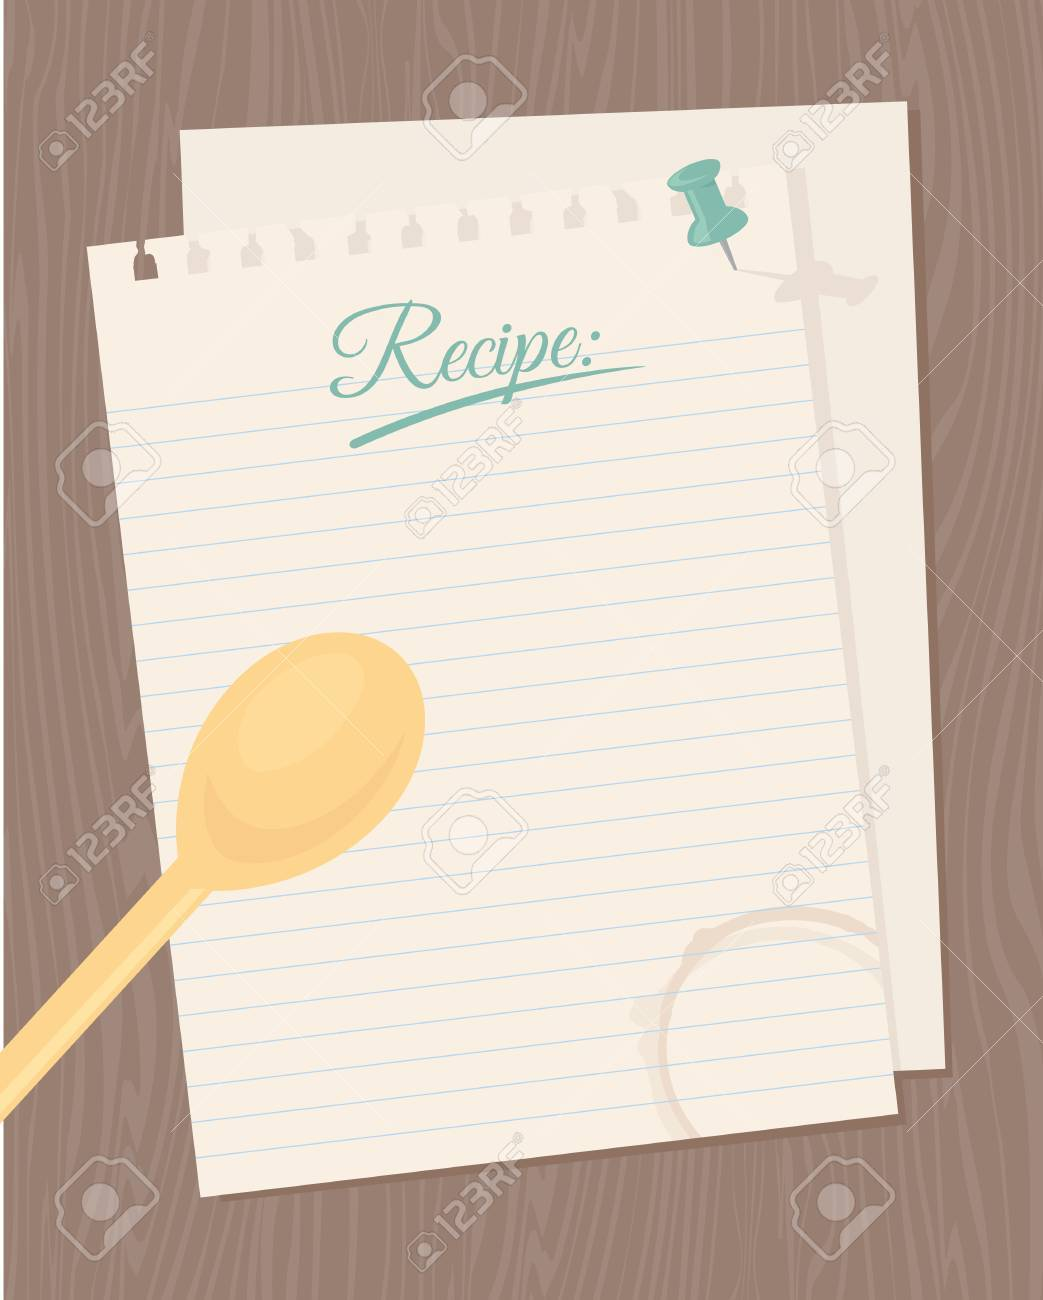 Blank recipe card for your culinary creations. - 40920308